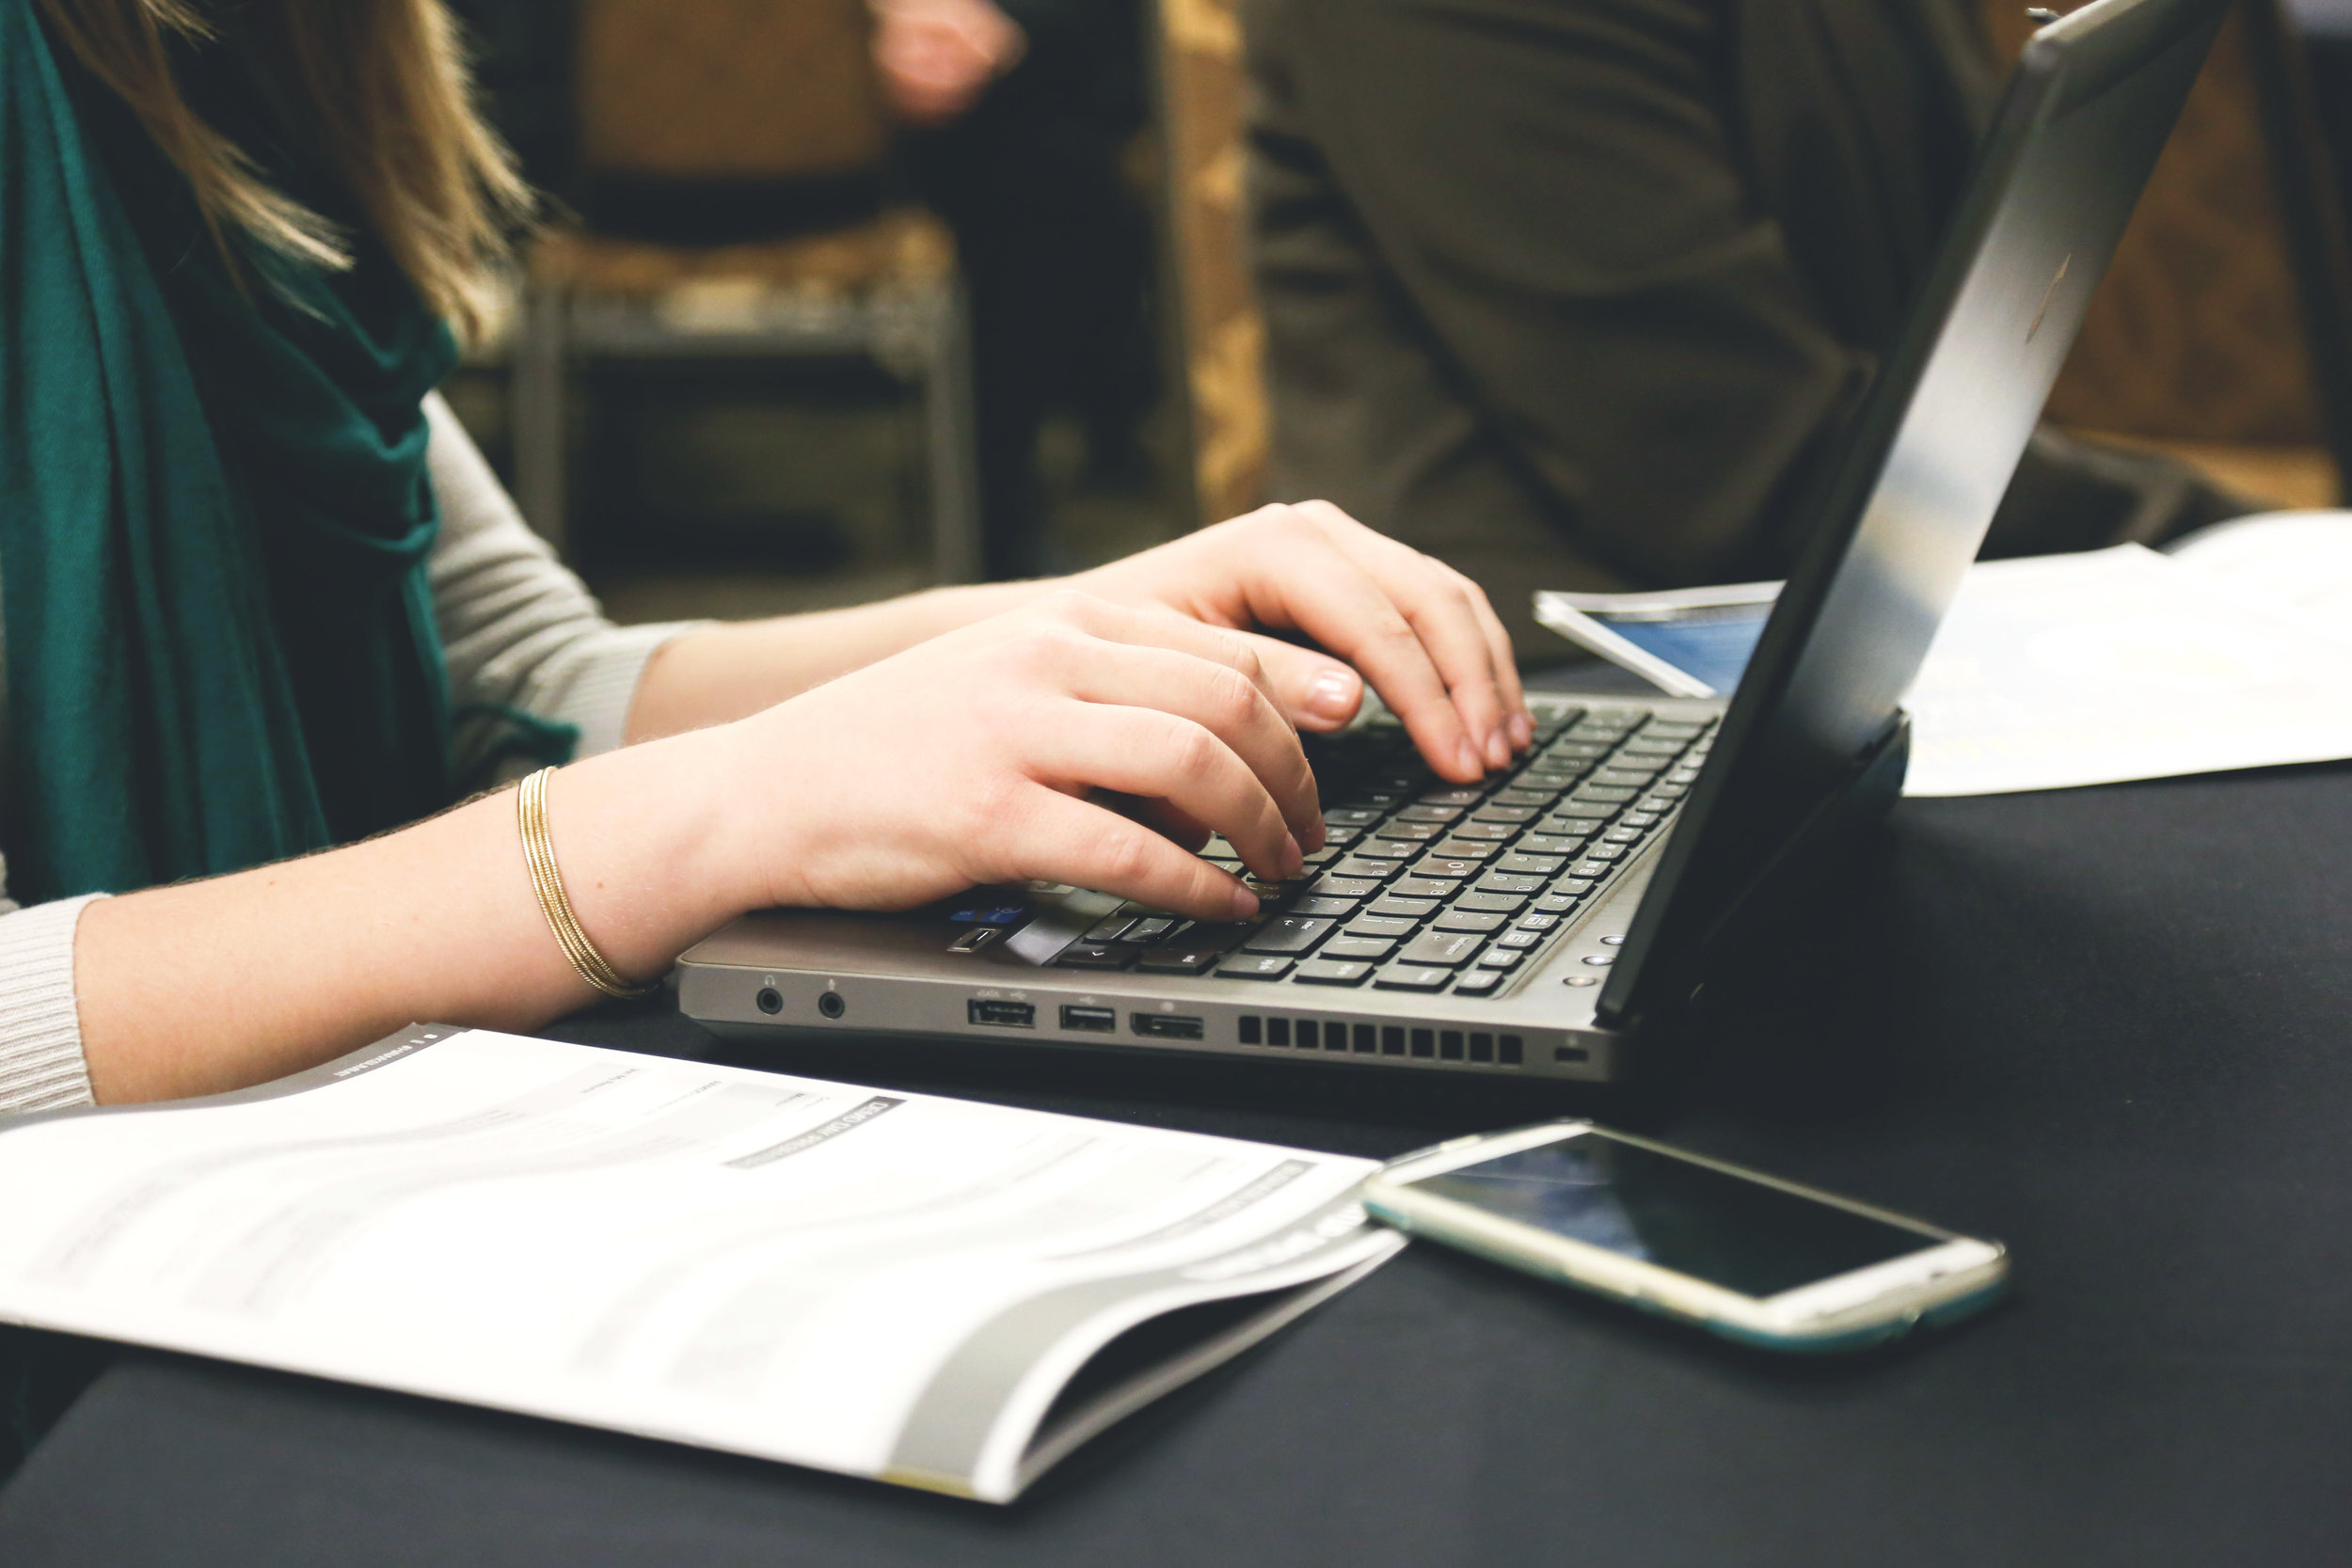 A new survey reveals that fully-online students want more interaction with classmates and instructors. -